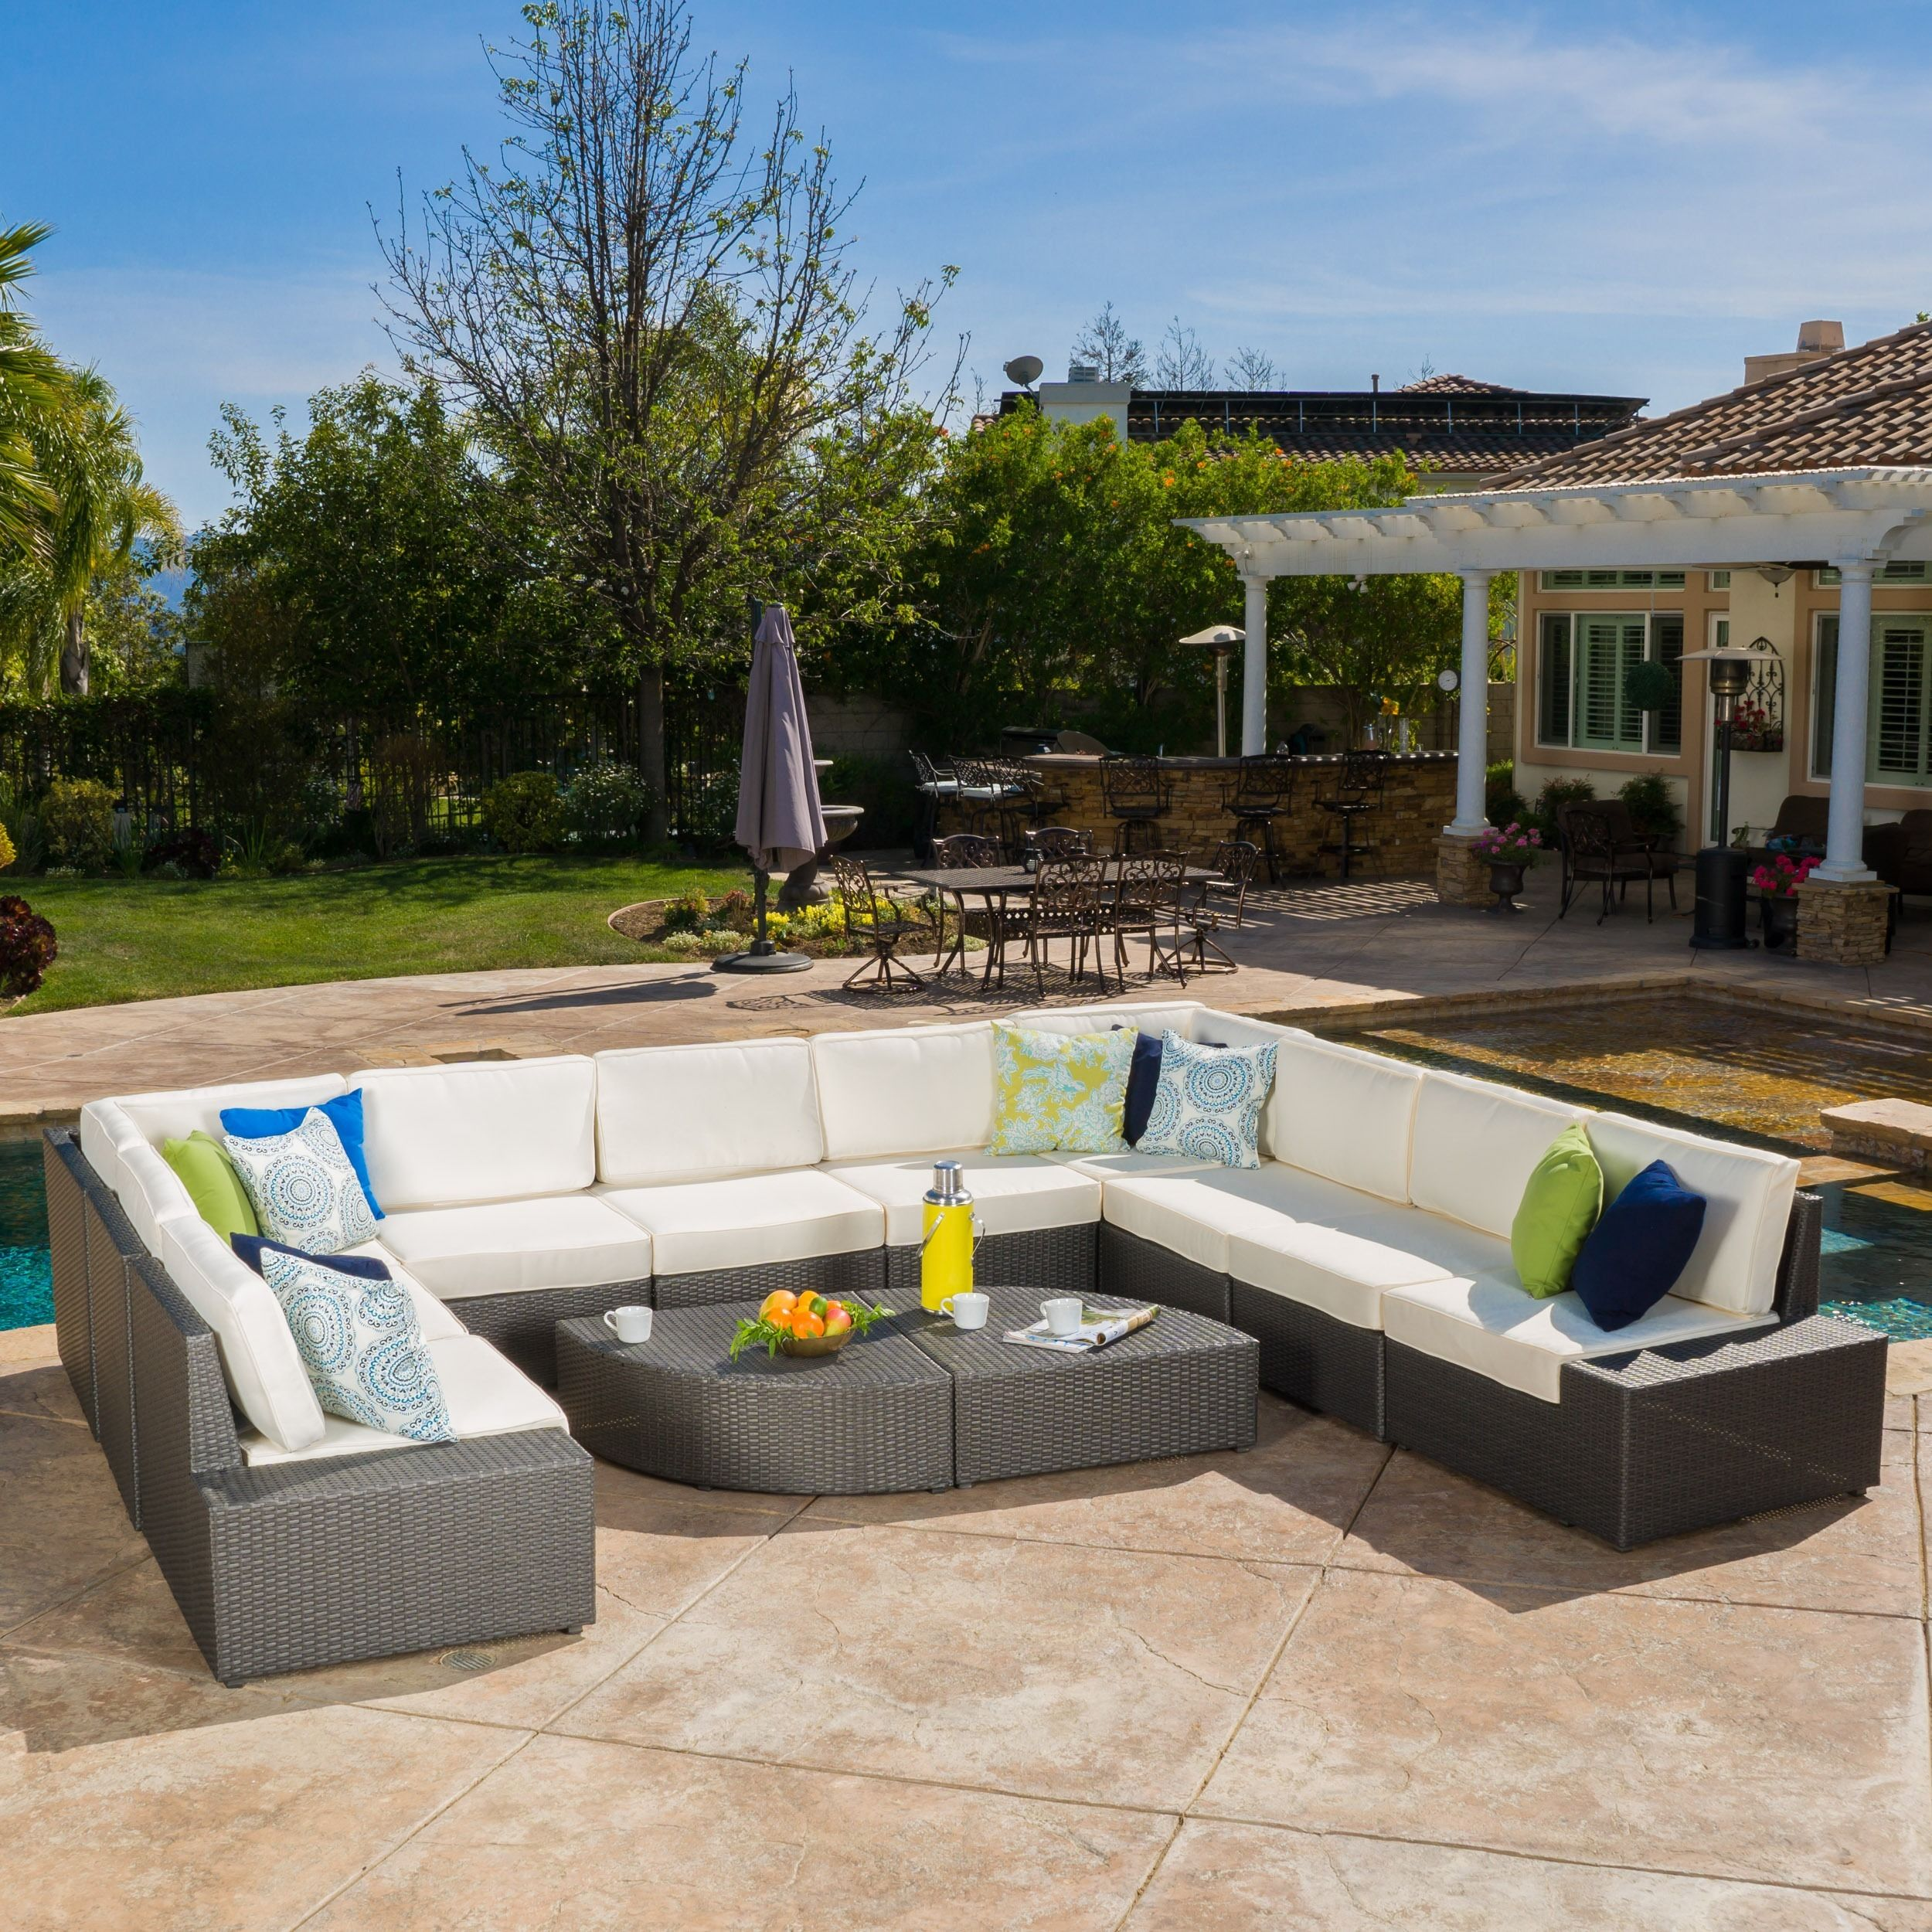 Marvelous Santa Cruz Outdoor 12 Piece Wicker Sectional Sofa Set With Cushions By  Christopher Knight Home (Grey), Patio Furniture (Fabric)